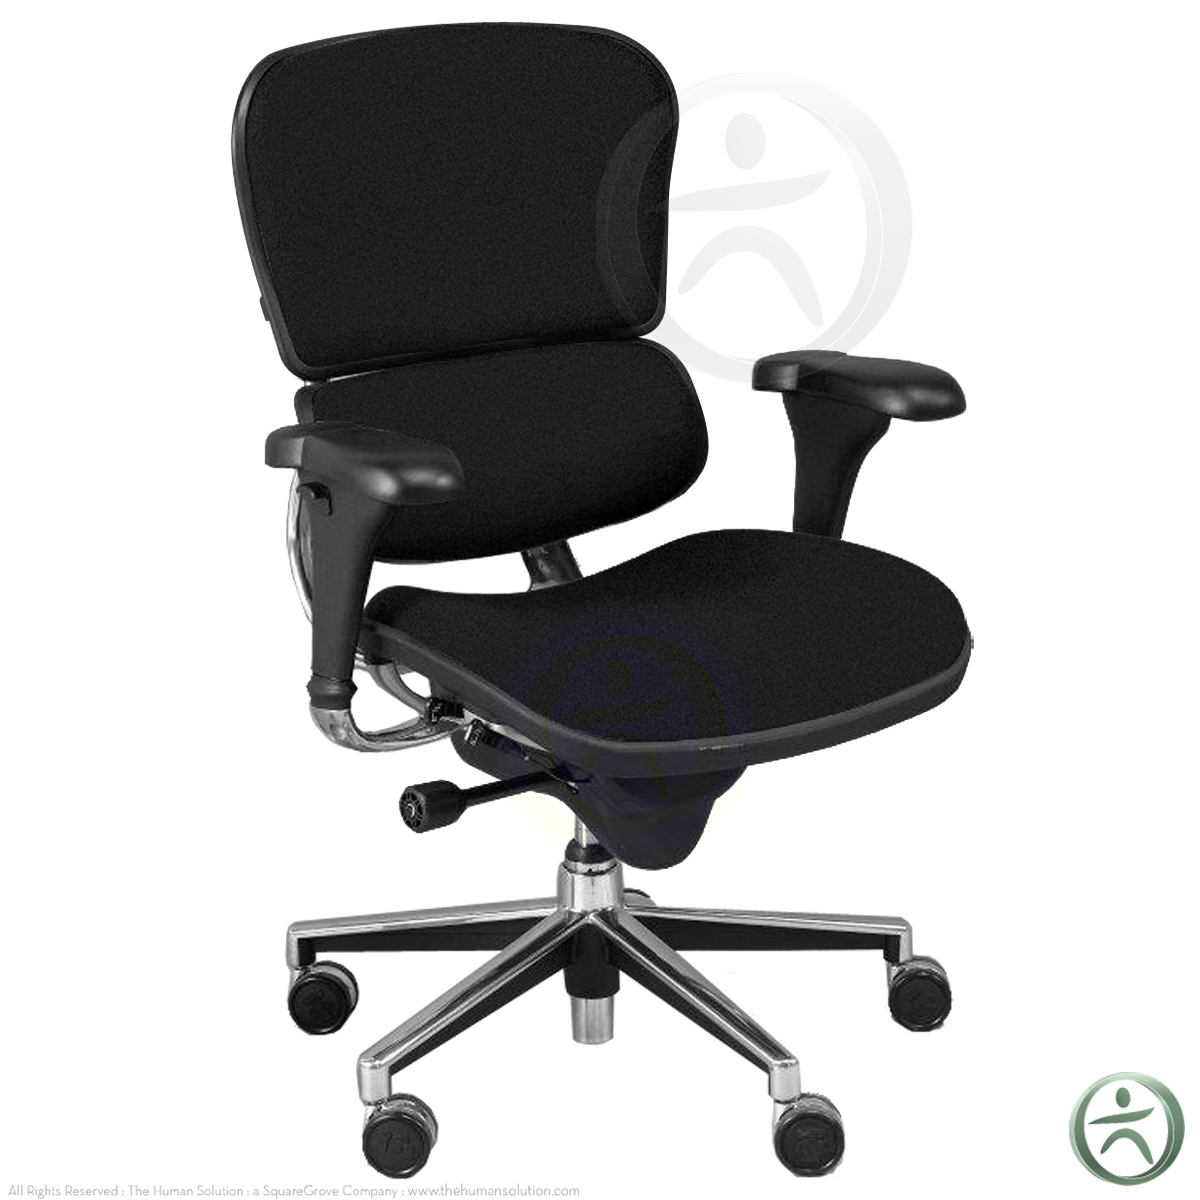 raynor ergohuman chair staples chairs office shop black fabric blk10erglo